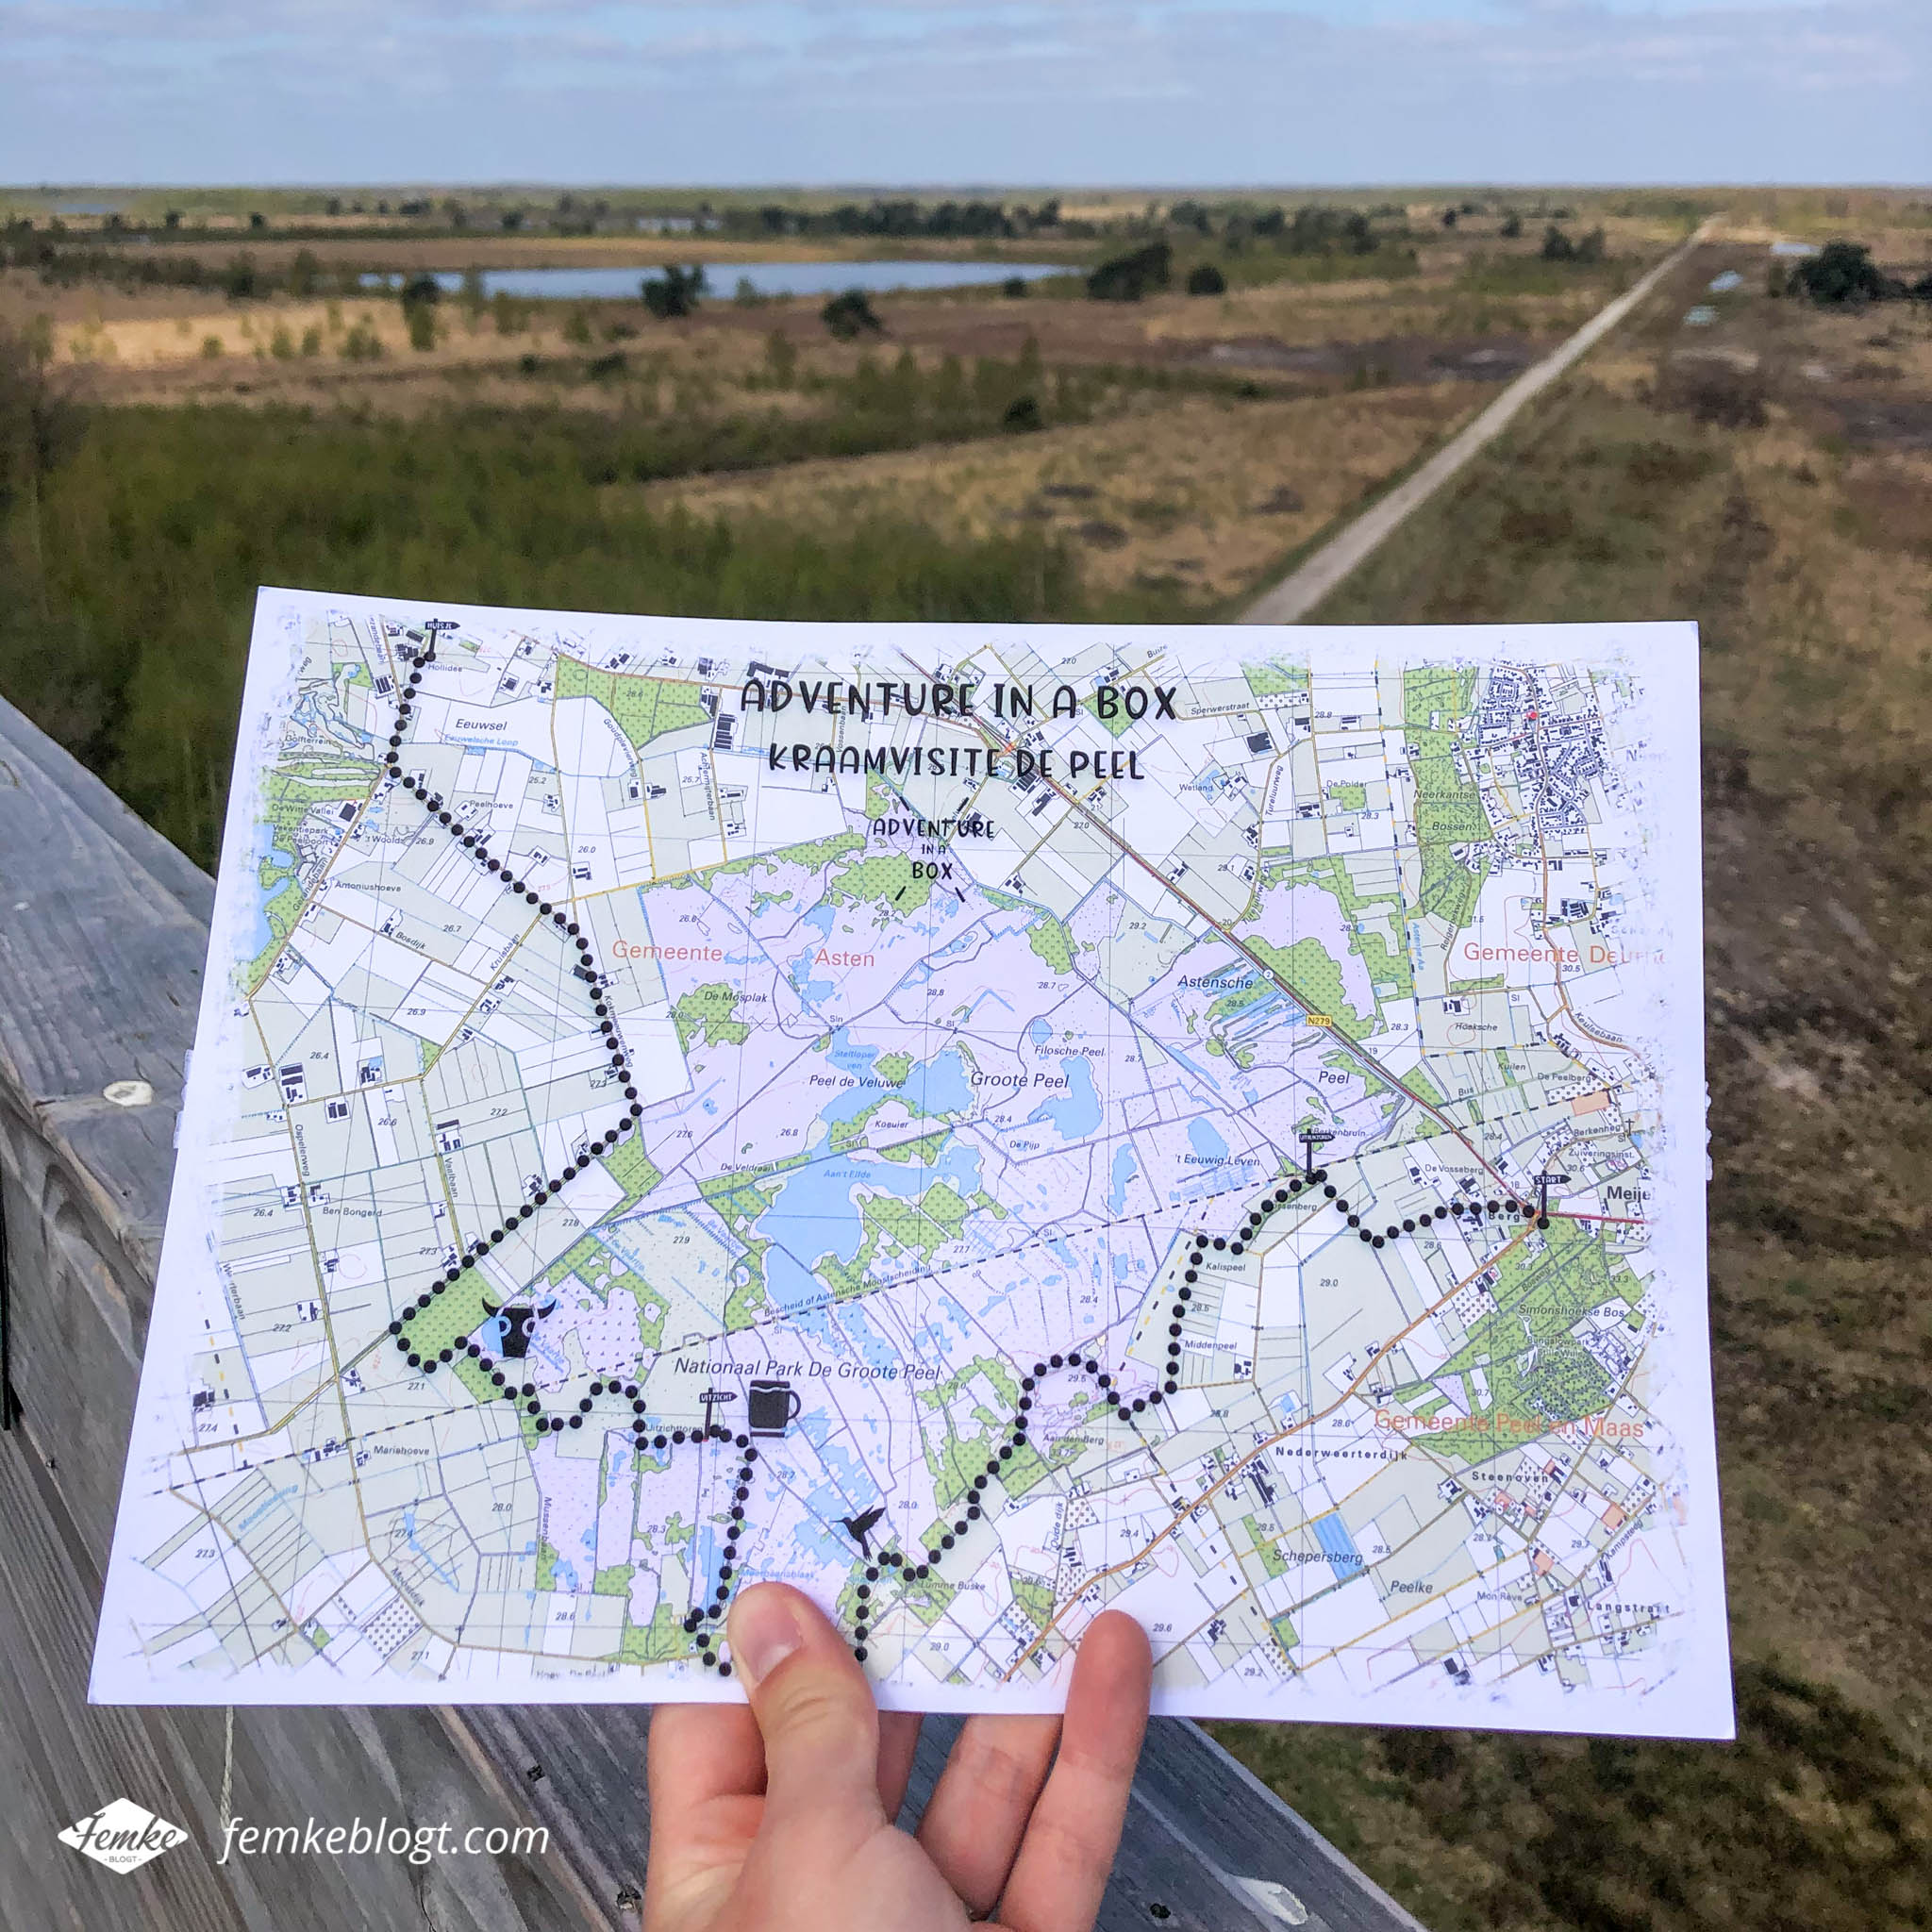 Adventure in a Box - Wandelroute